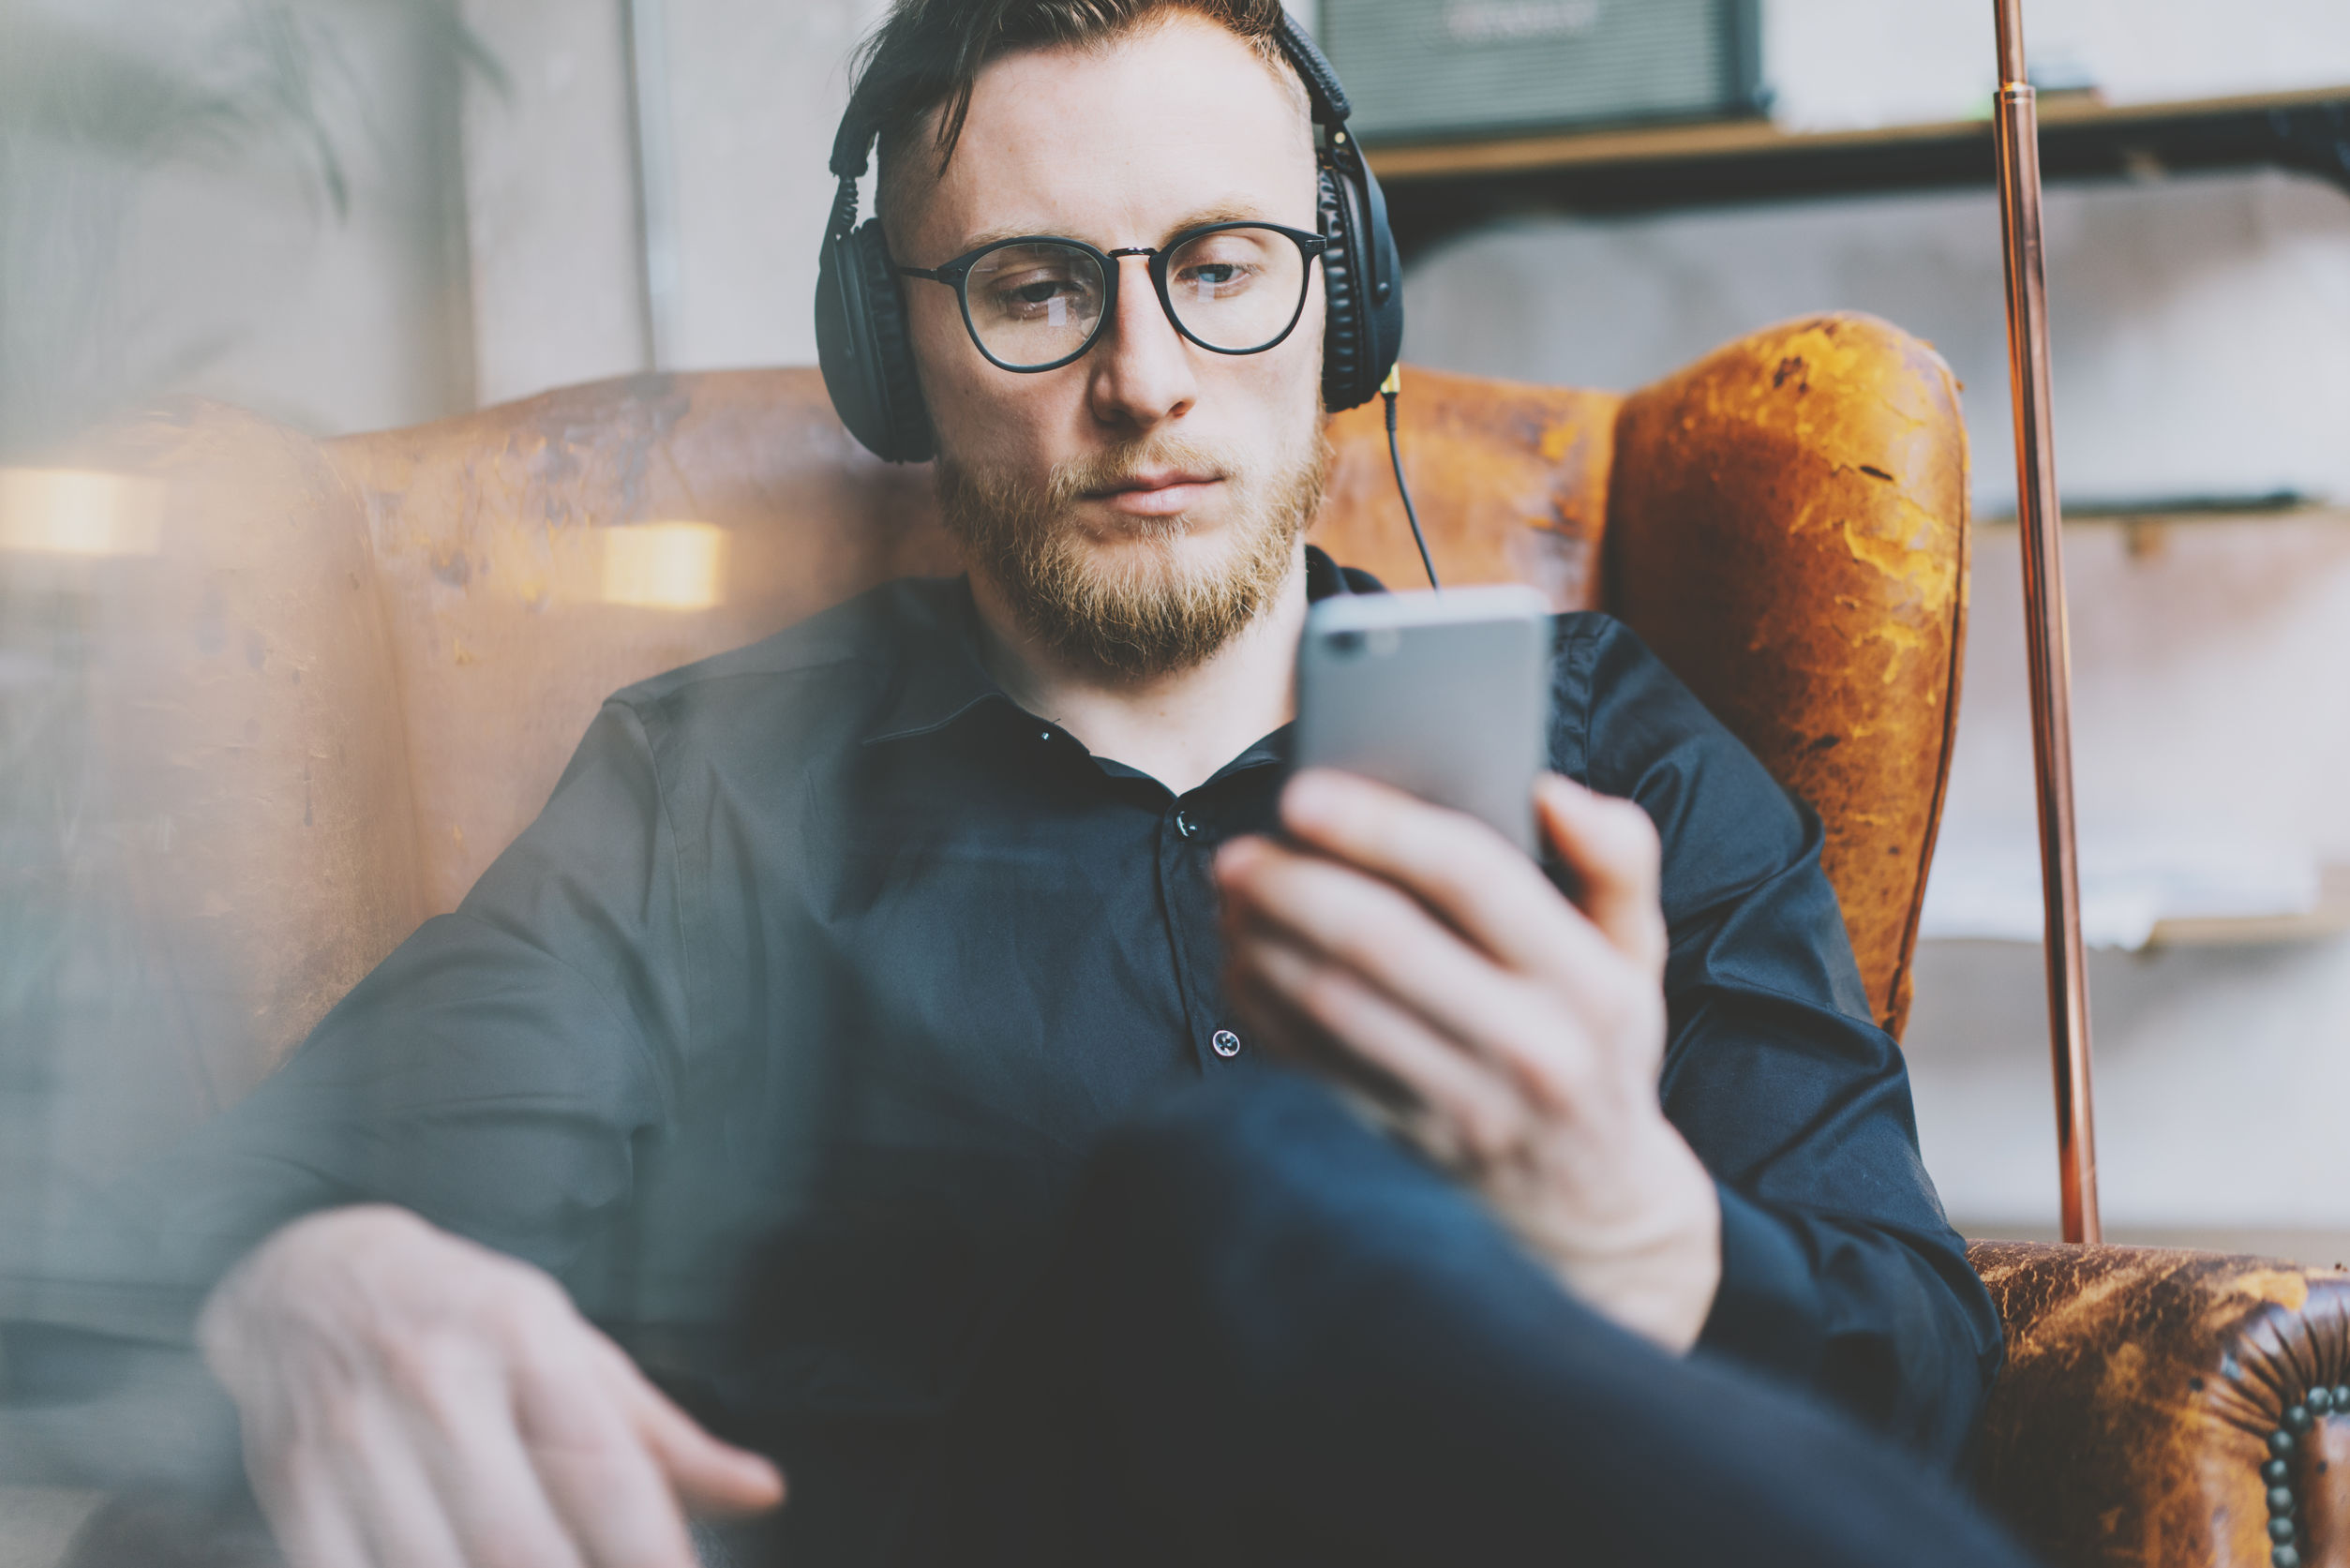 54433004 - closeup photo handsome bearded man in headphones listening to music modern loft studio. man sitting in vintage chair, holding smartphone and relaxing. panoramic windows background, film effect.